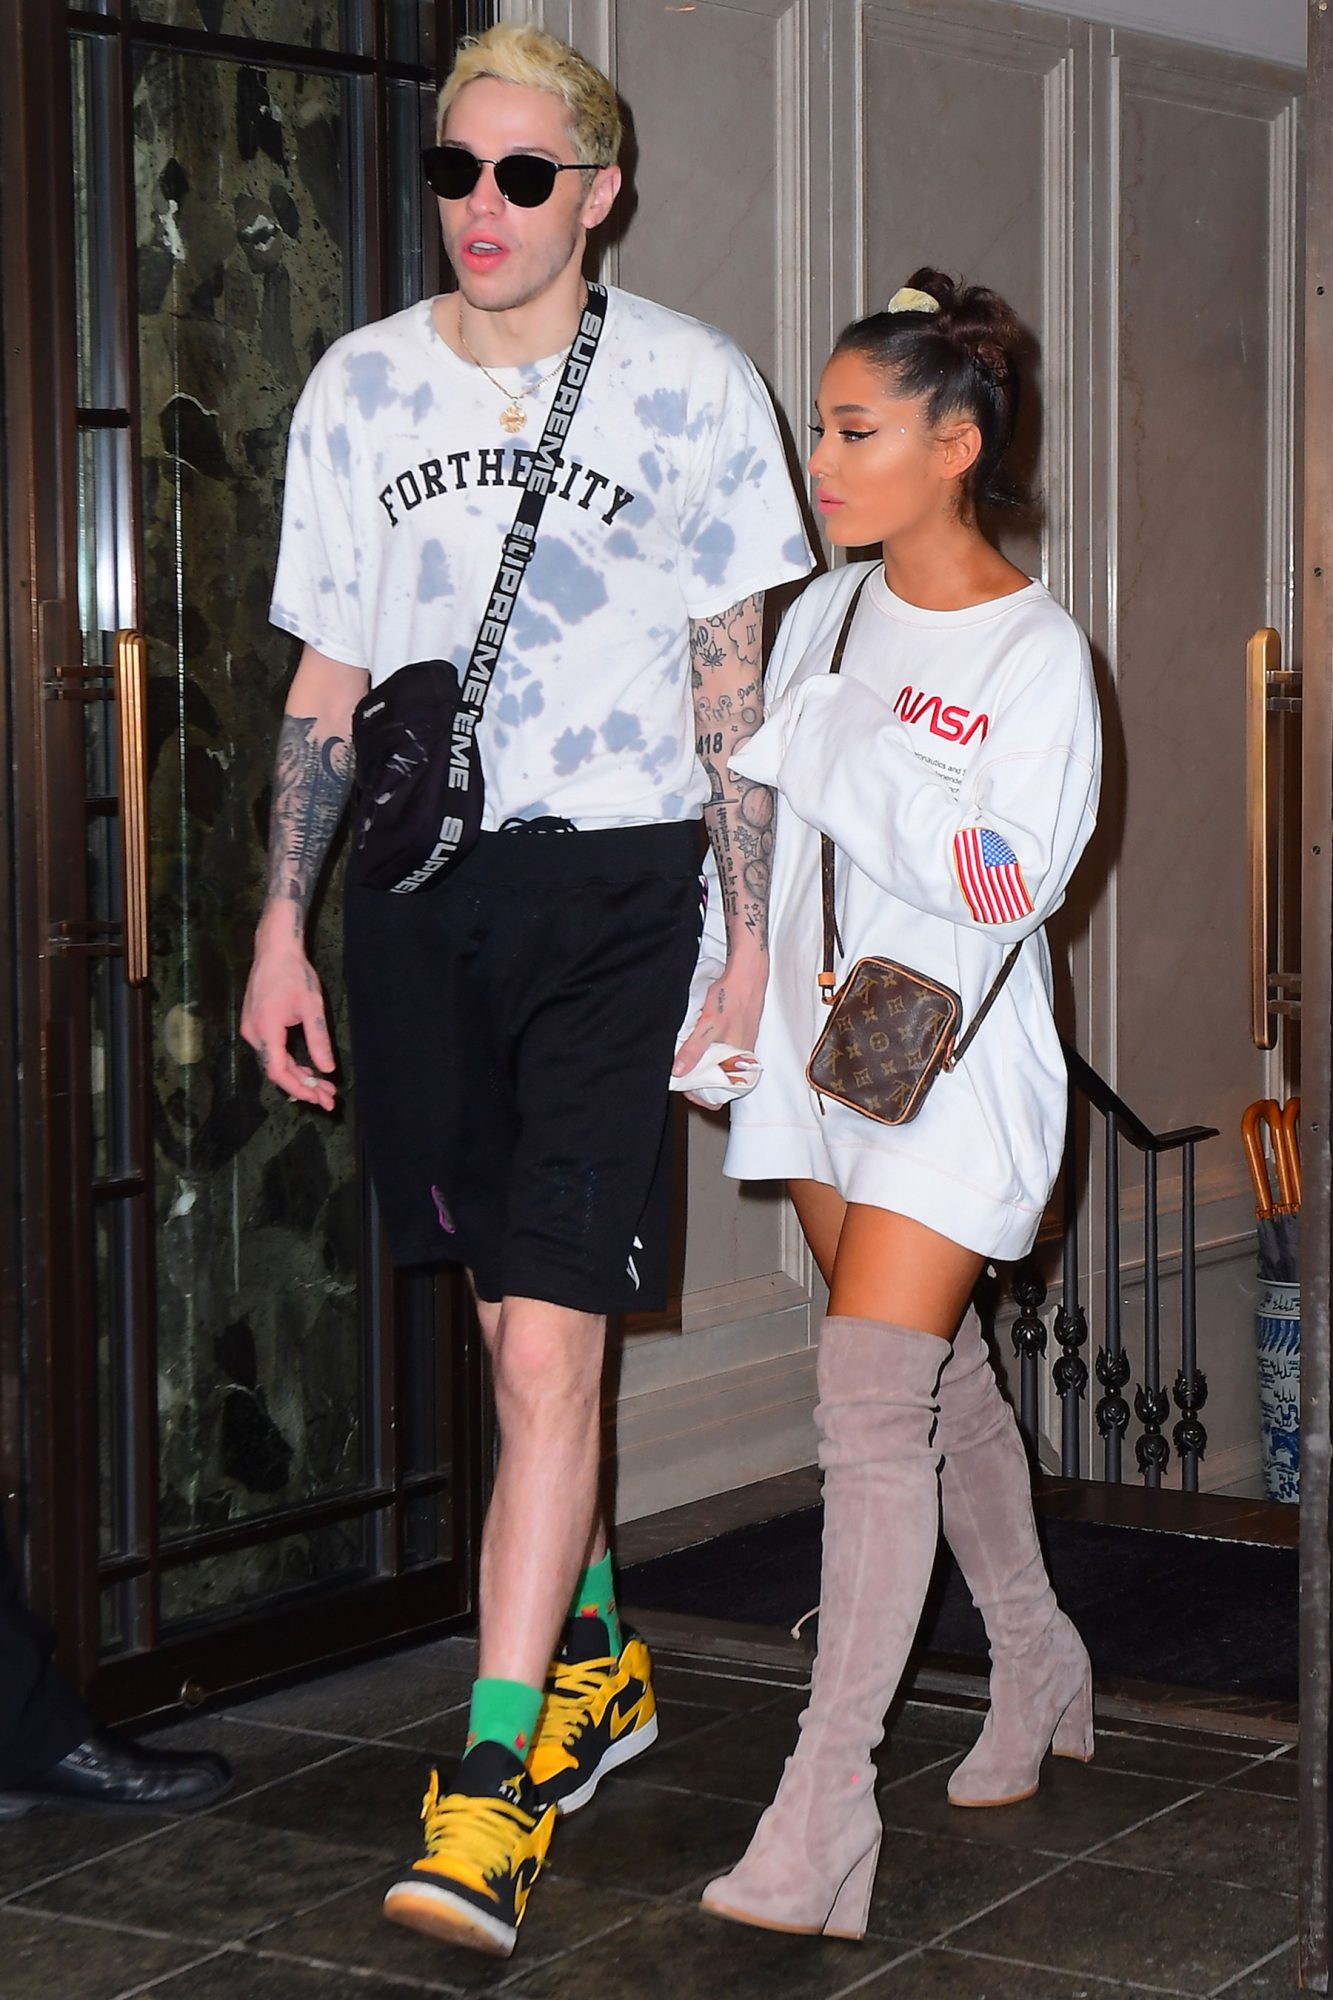 EXCLUSIVE: Ariana Grande Shows Off her Natural Hair during Casual Outing with Pete Davidson